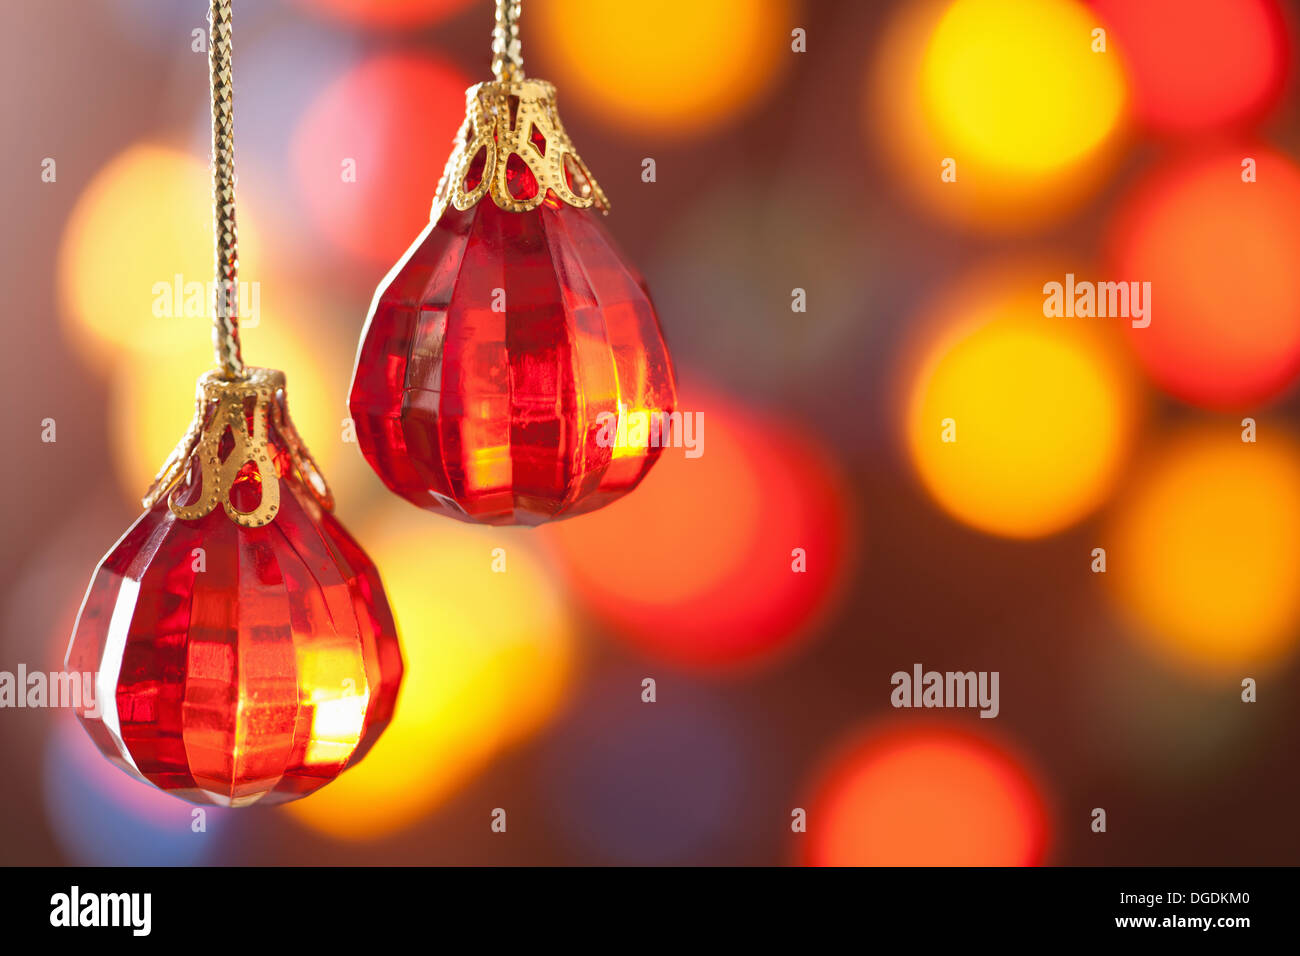 red Christmas decoration over blurred background - Stock Image